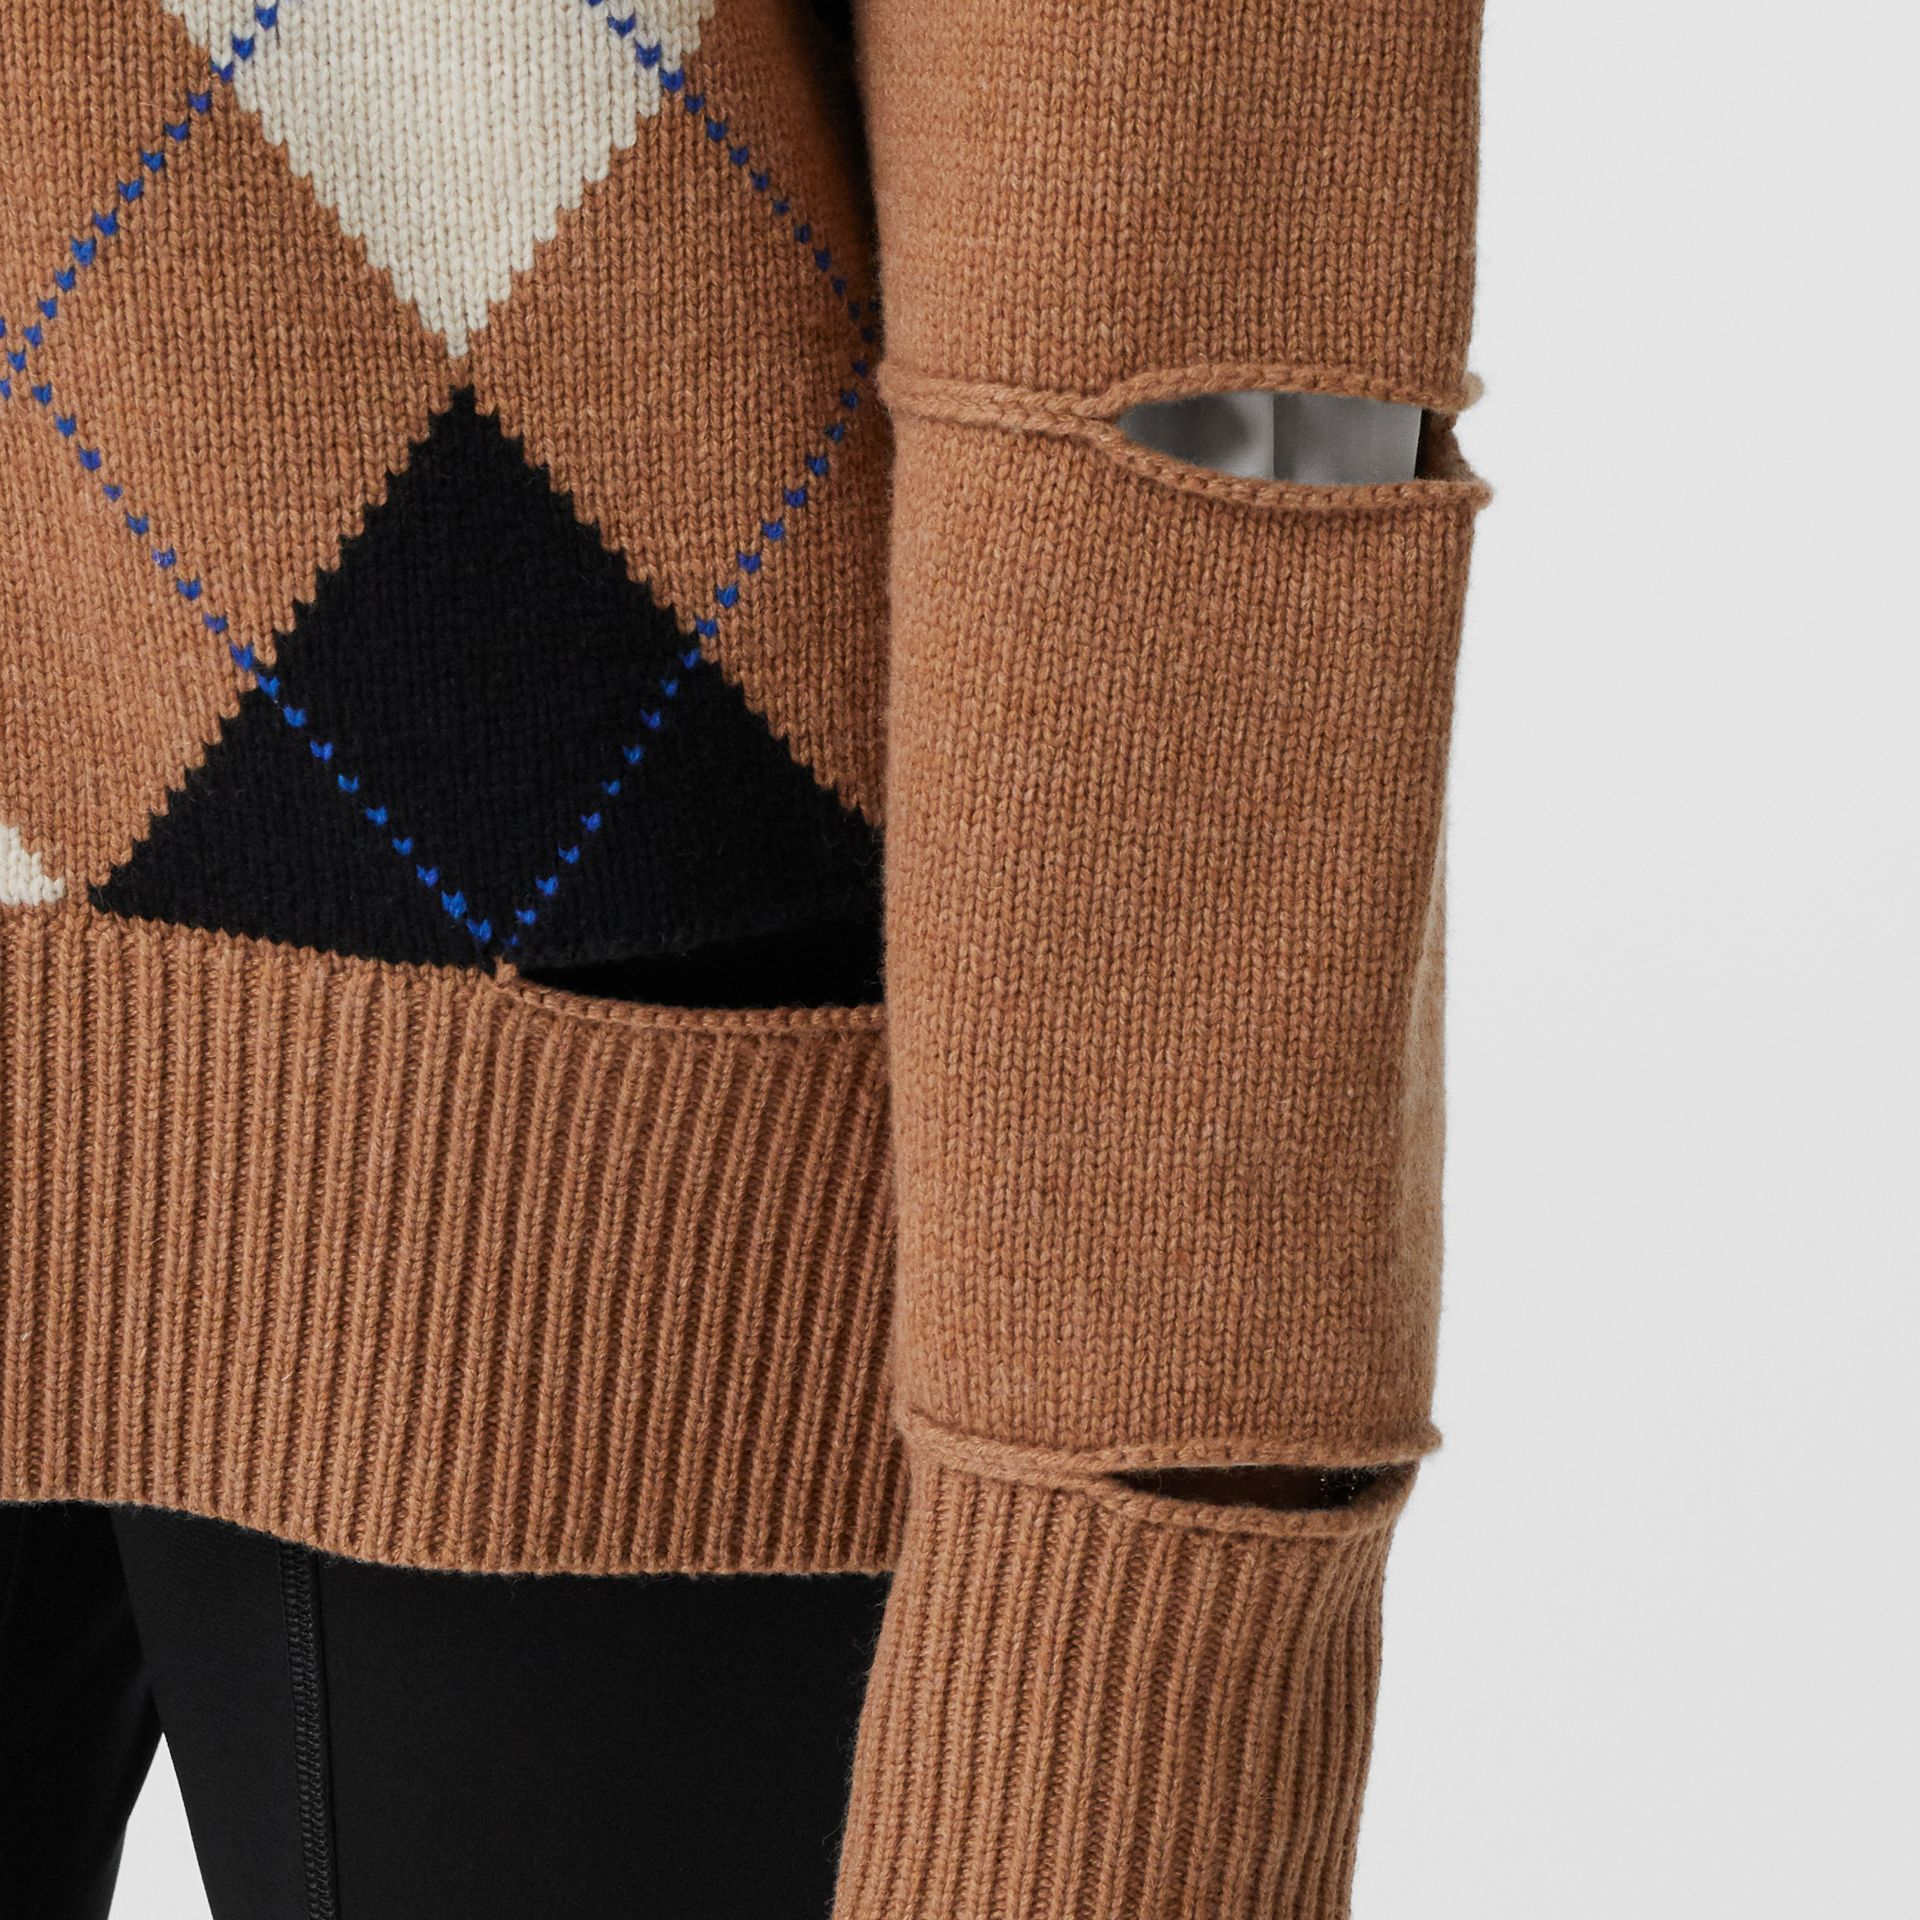 Cut-out Detail Argyle Intarsia Wool Cashmere Sweater in Camel - Women | Burberry - gallery image 4